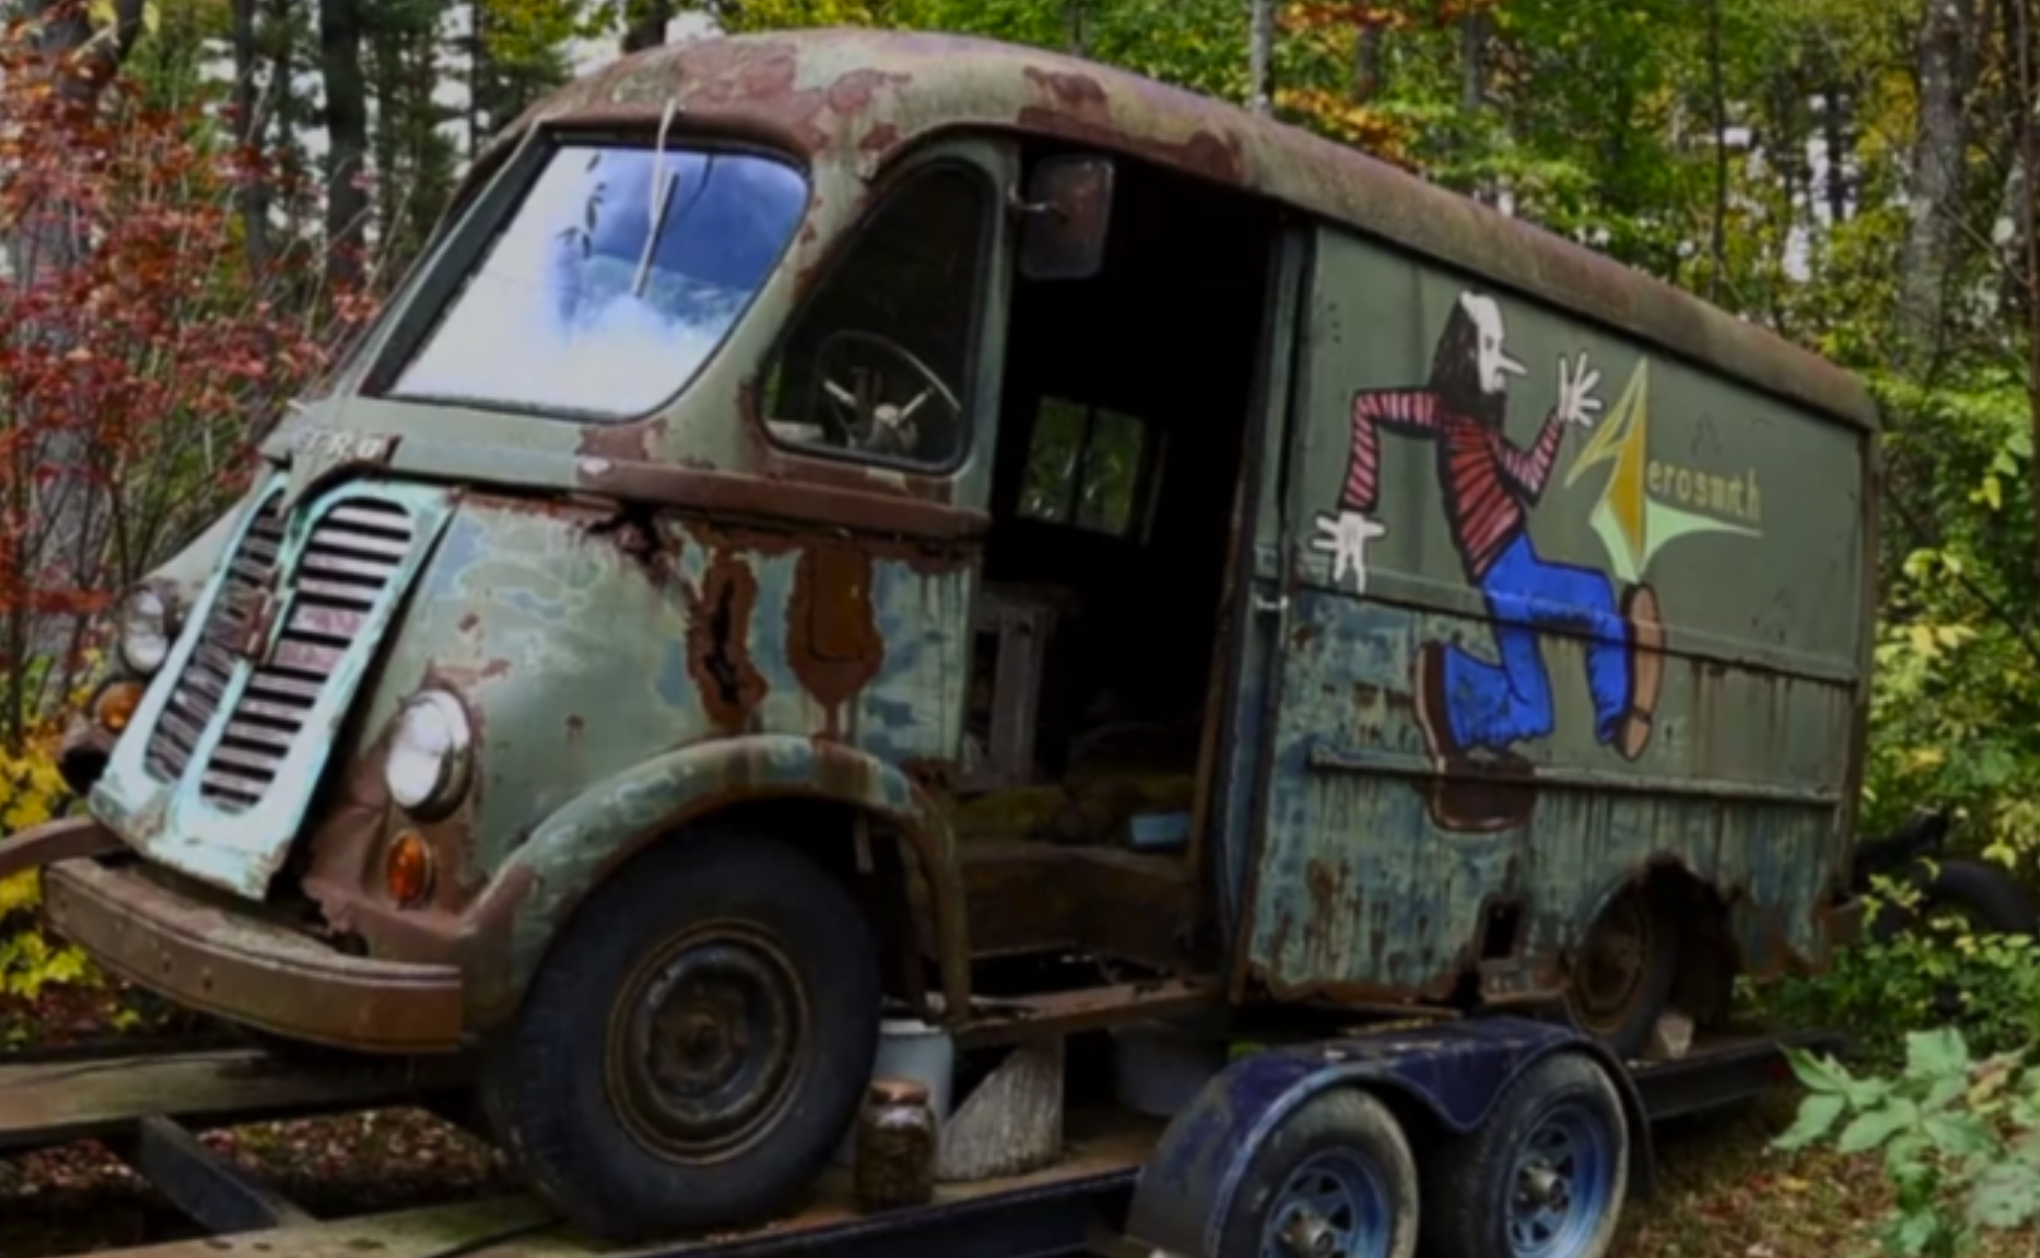 AMERICAN PICKERS Hosts Stumble Upon Old Aerosmith Tour Van in the Woods